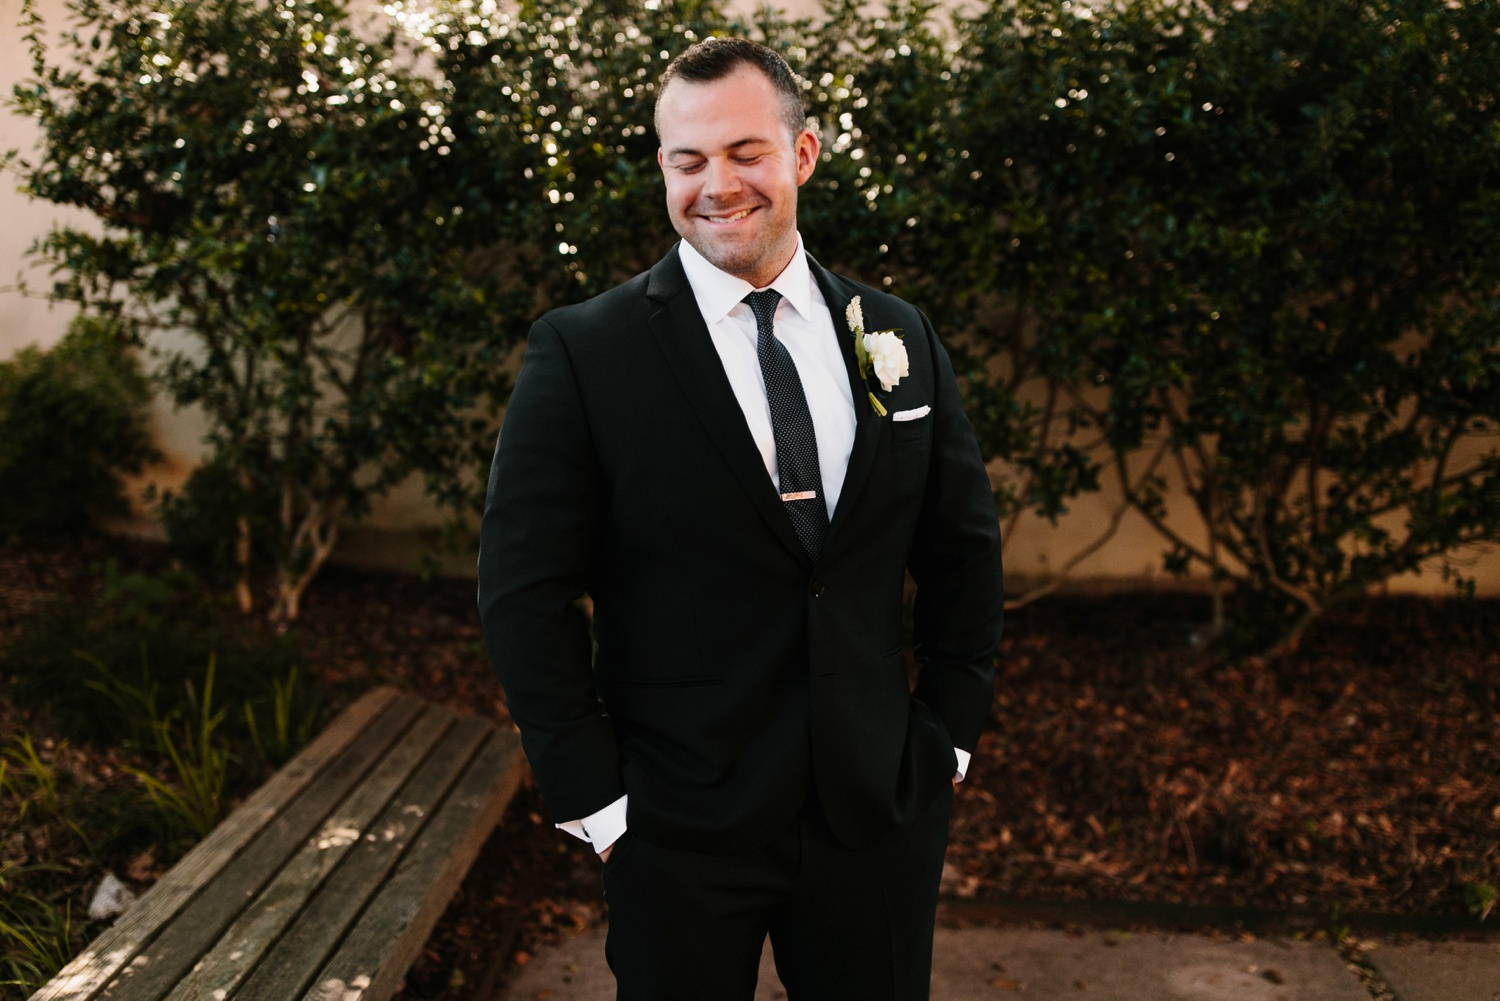 Kadee + Tyler | a raw, emotional wedding at the Filter Building on White Rock Lake in Dallas, TX by North Texas Wedding Photographer, Rachel Meagan Photography 034